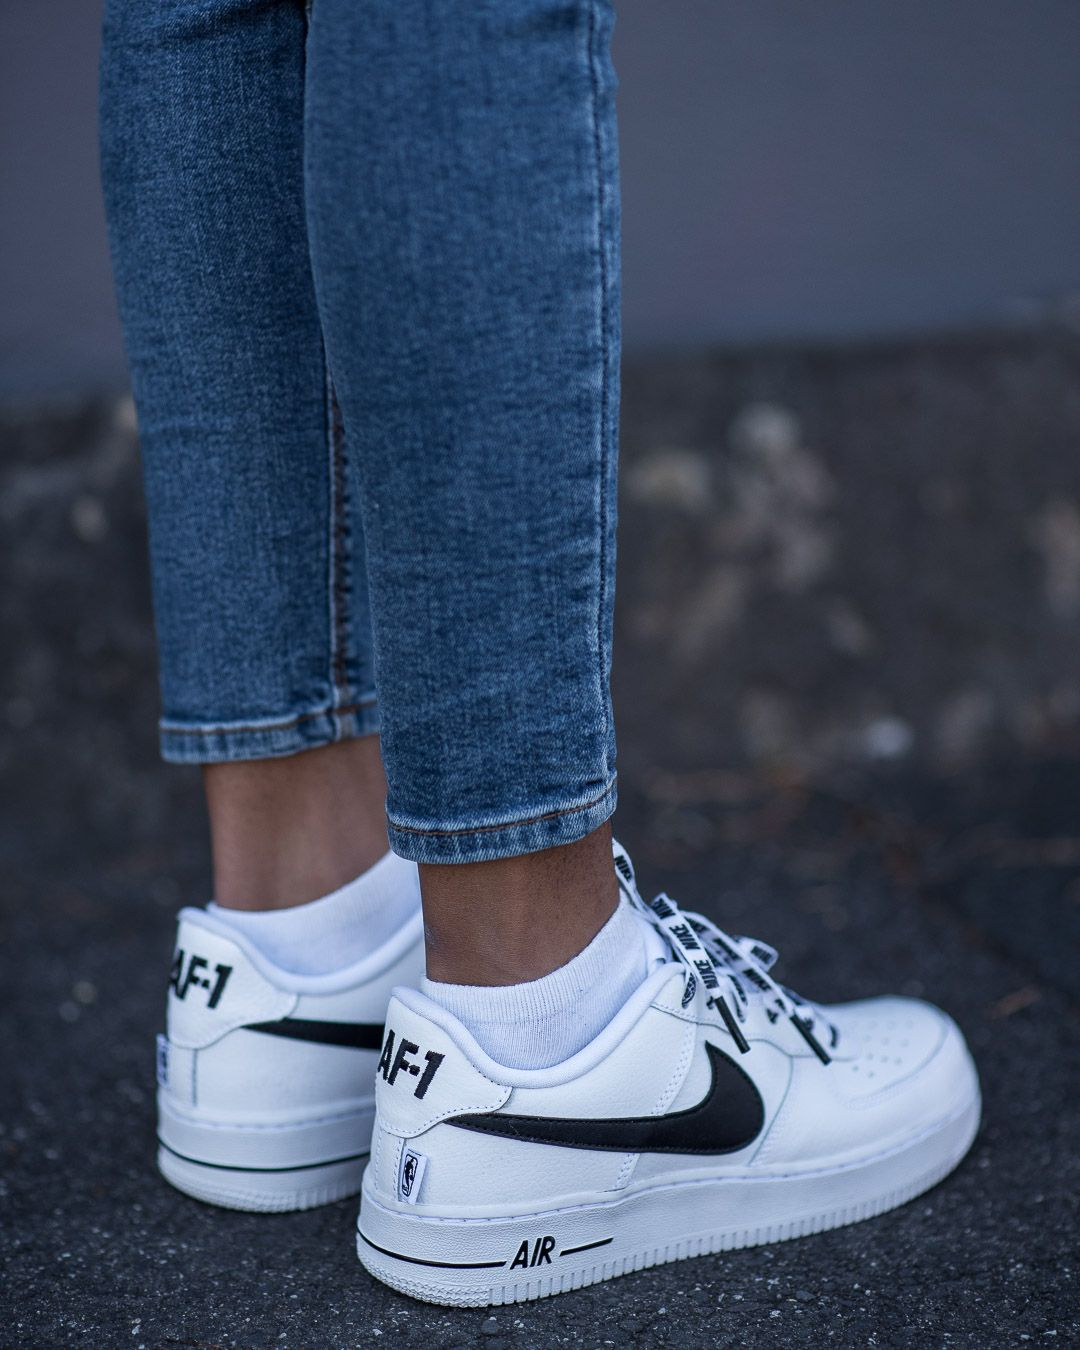 detailing 6ac42 76233 Nike Airforce 1  Sneakers of the Month   Femmes   Shoes, Nike shoes et  Sneakers